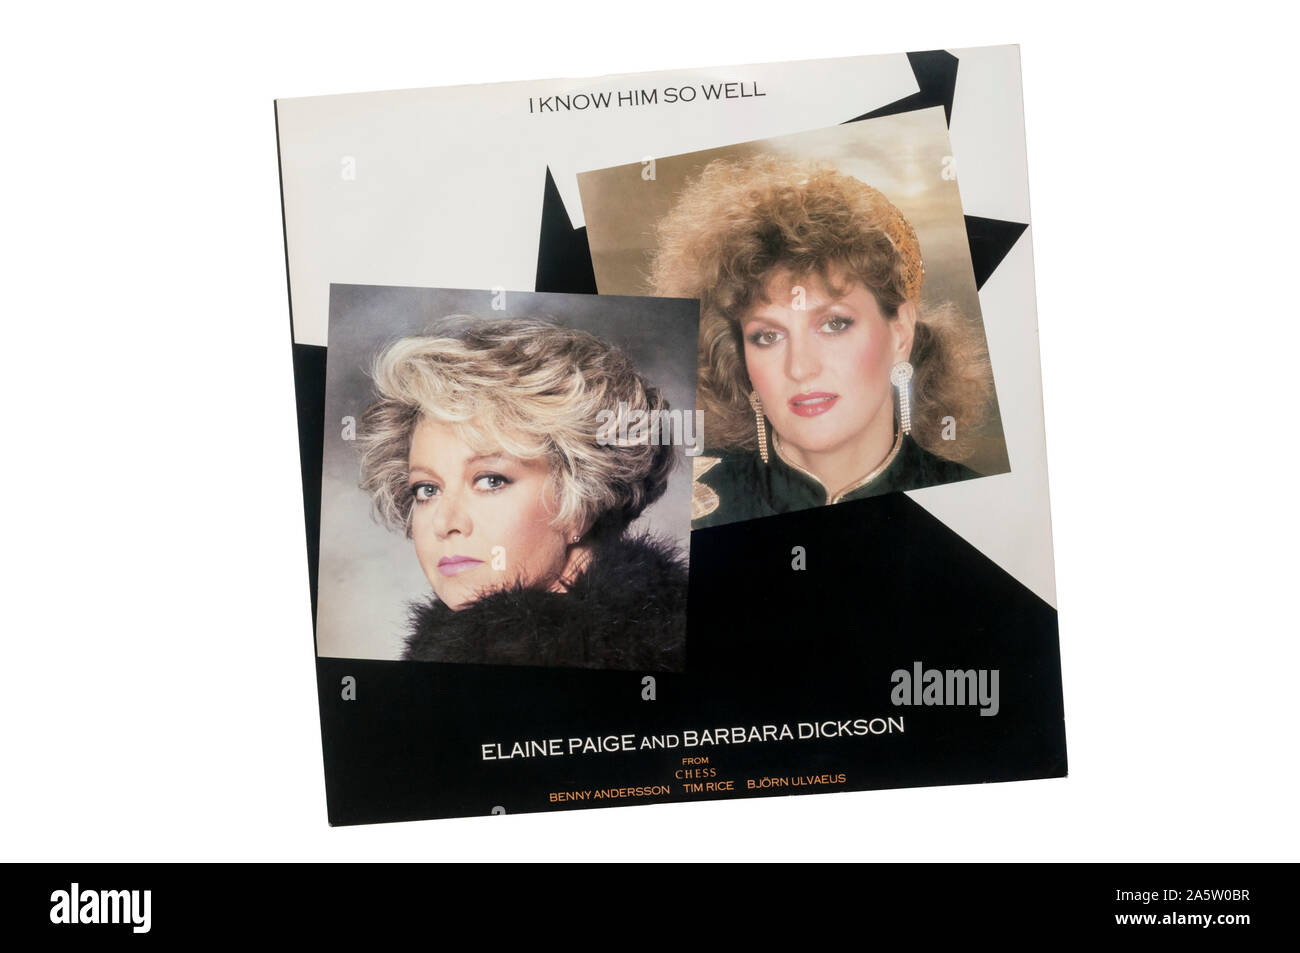 Twelve inch single of I Know Him So Well by Elaine Paige & Barbara Dickson from the musical Chess. Released in 1984. Stock Photo